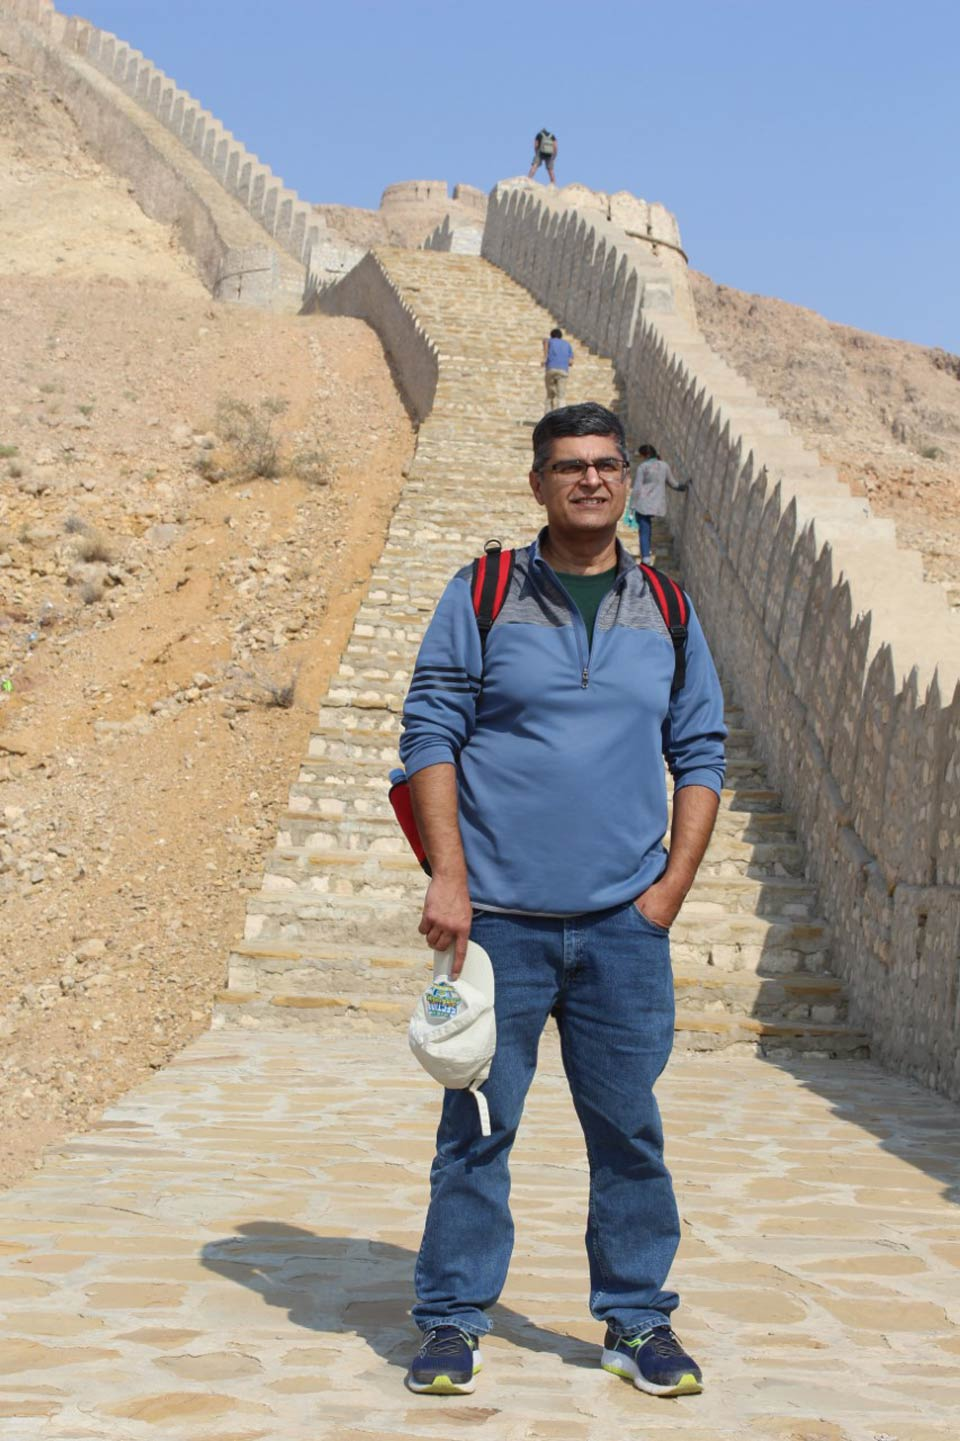 Mr. Faisal Saeed from California USA right in front of the stairs along with the great wall of Rani Kot